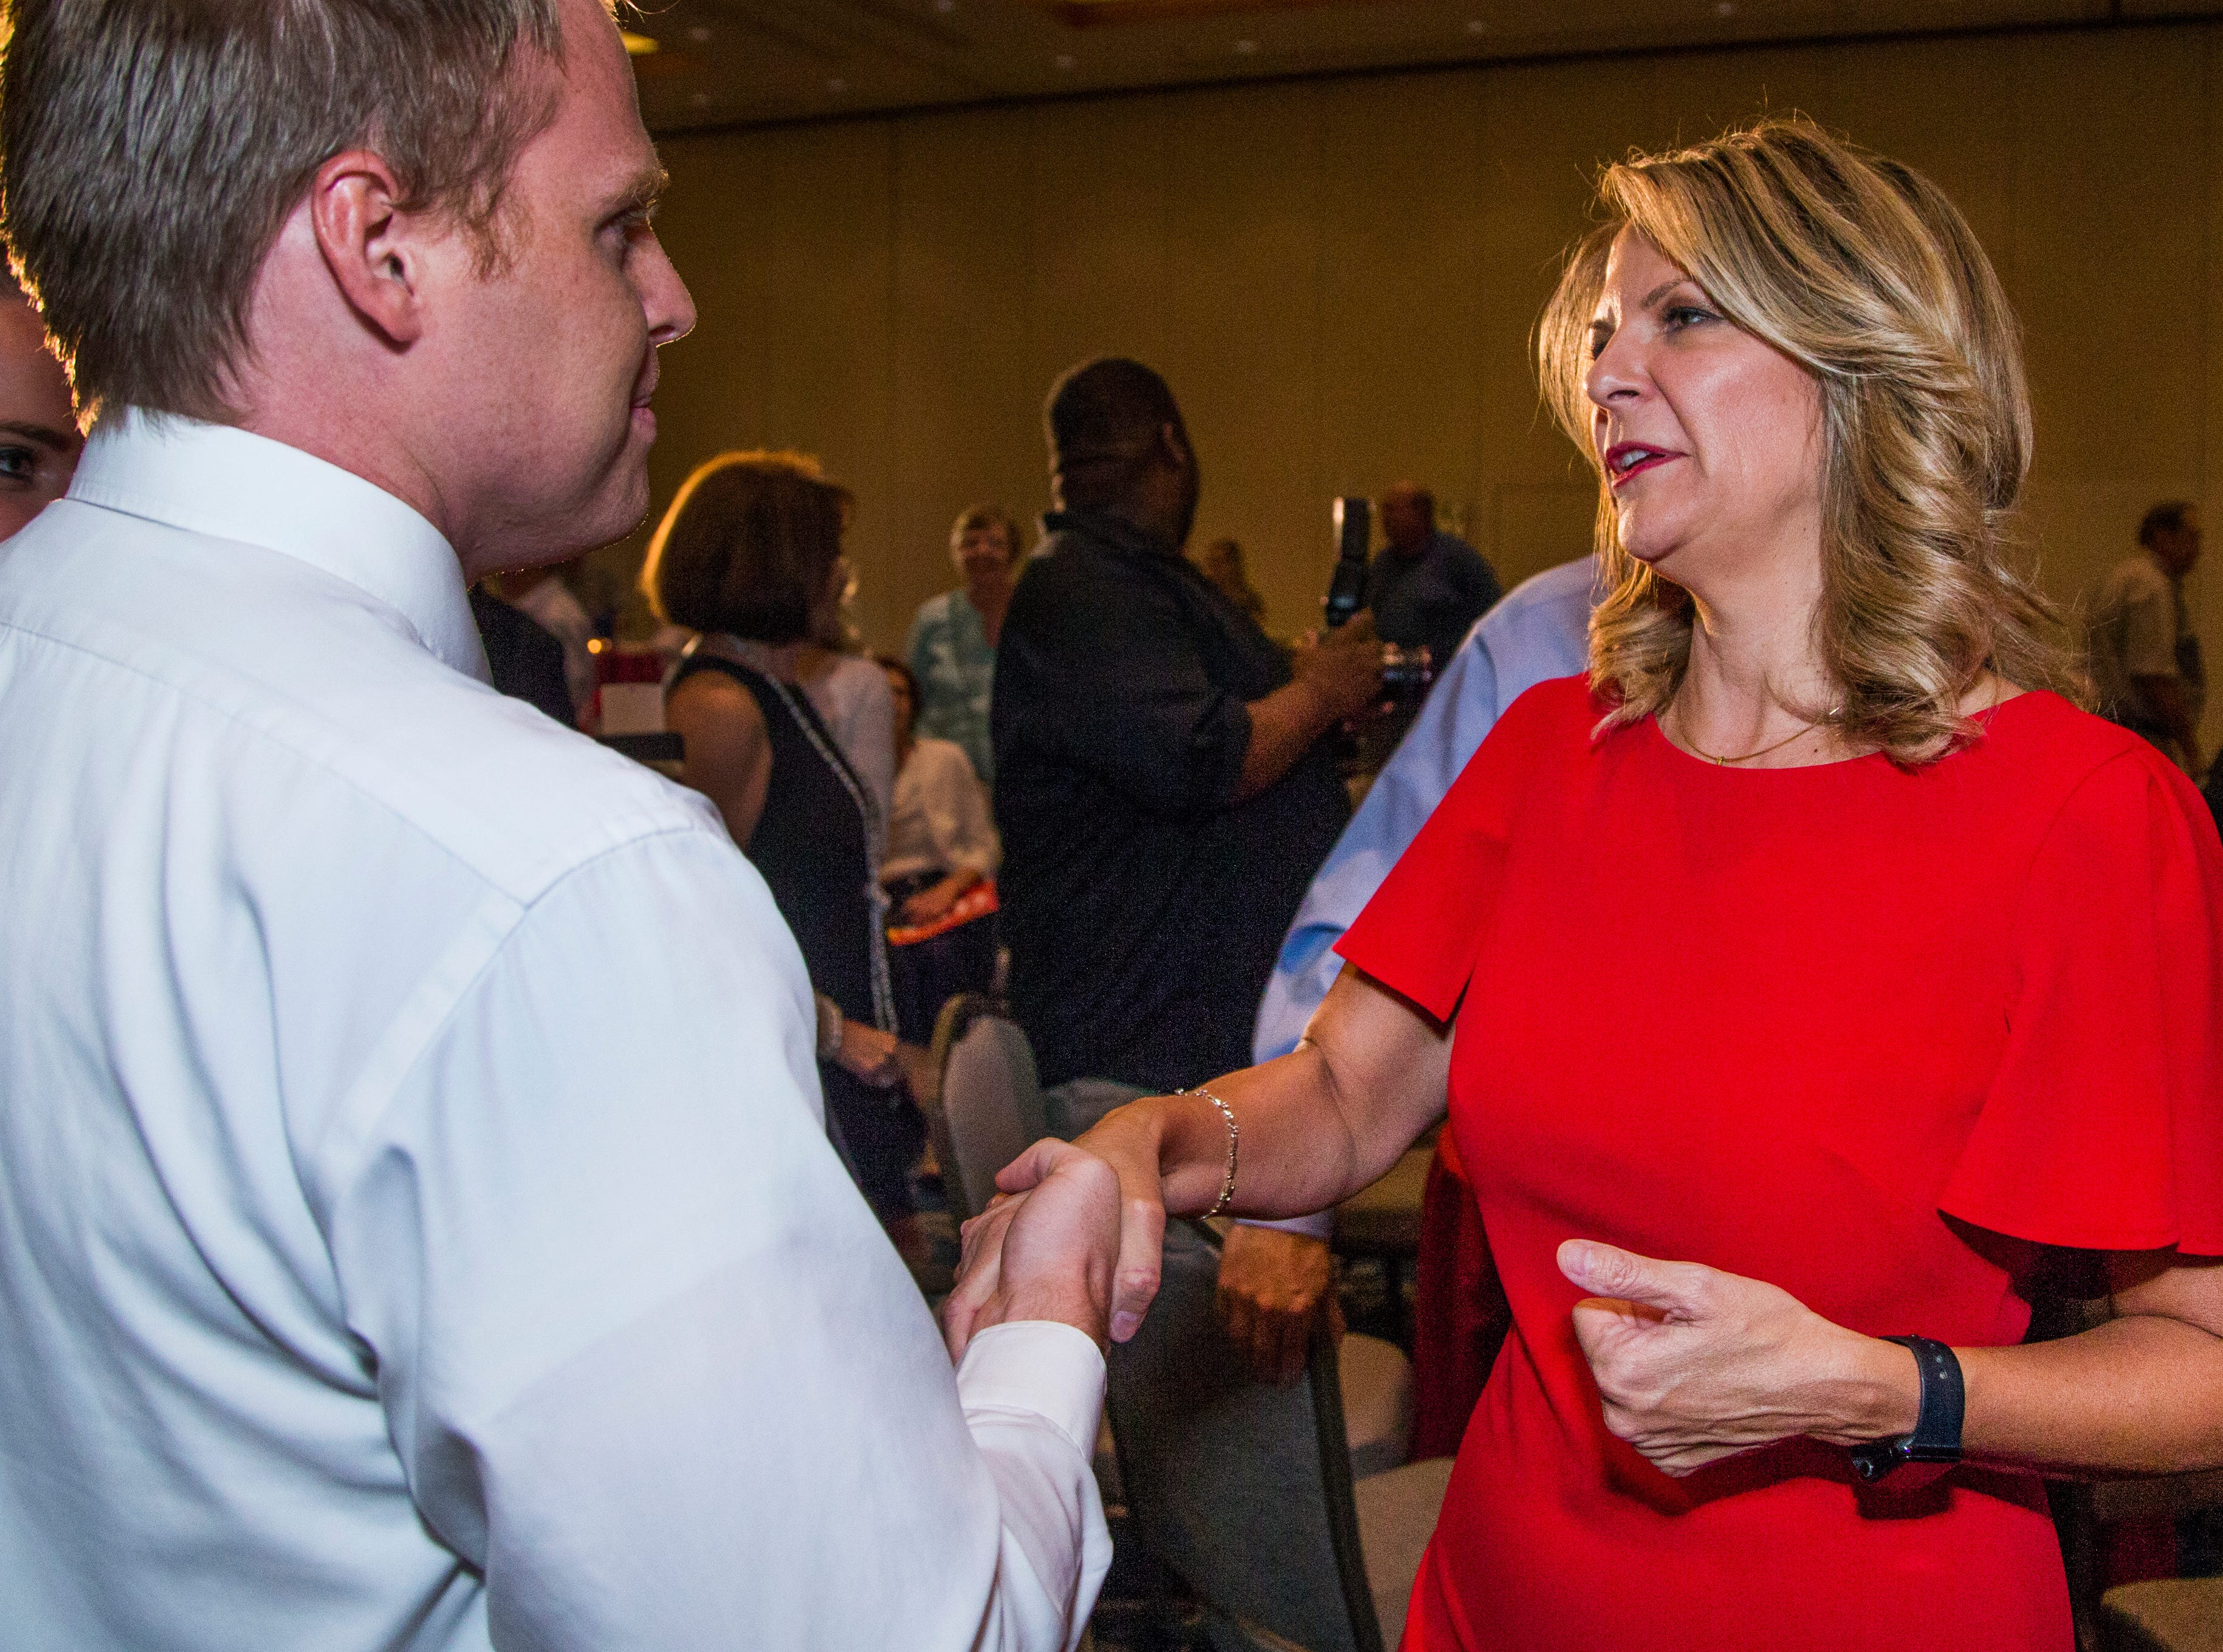 Kelli Ward (right) greets supporter Carter Brown, 25, of Mesa, during a primary election night party at Embassy Suites Scottsdale on Aug. 28, 2018.